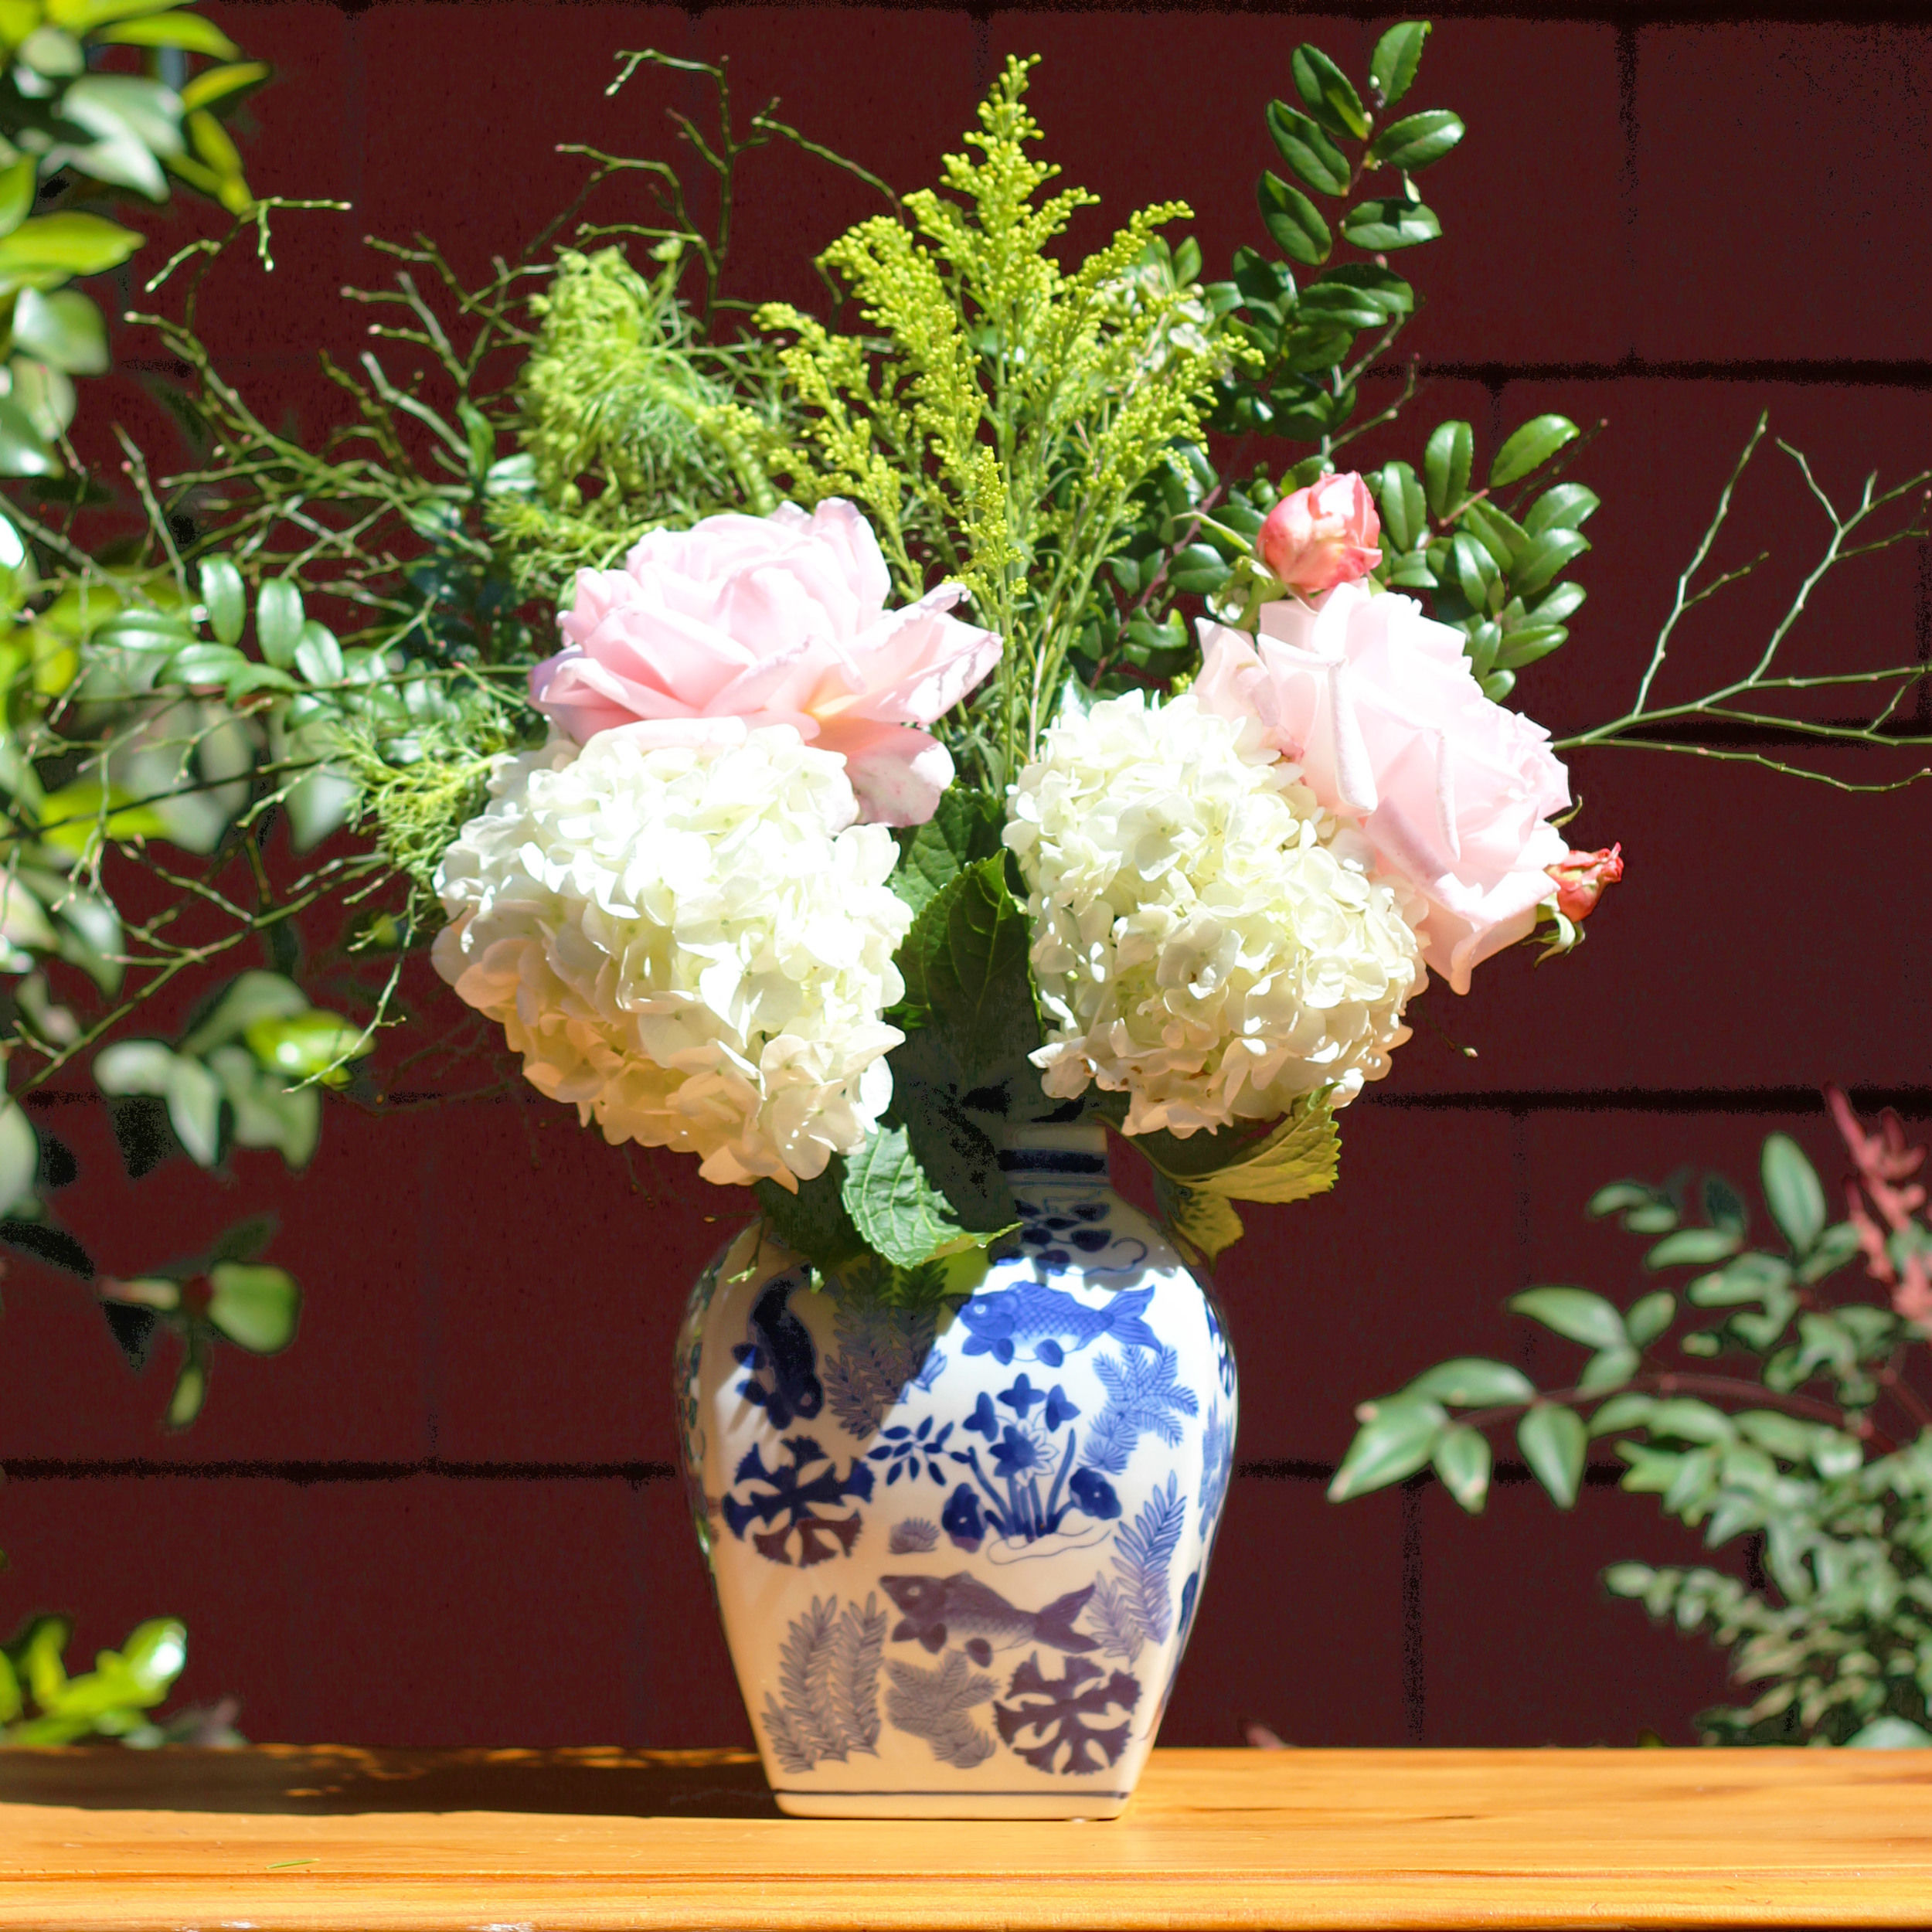 Put one hydrangea low on each side and one pink rose above in the front.